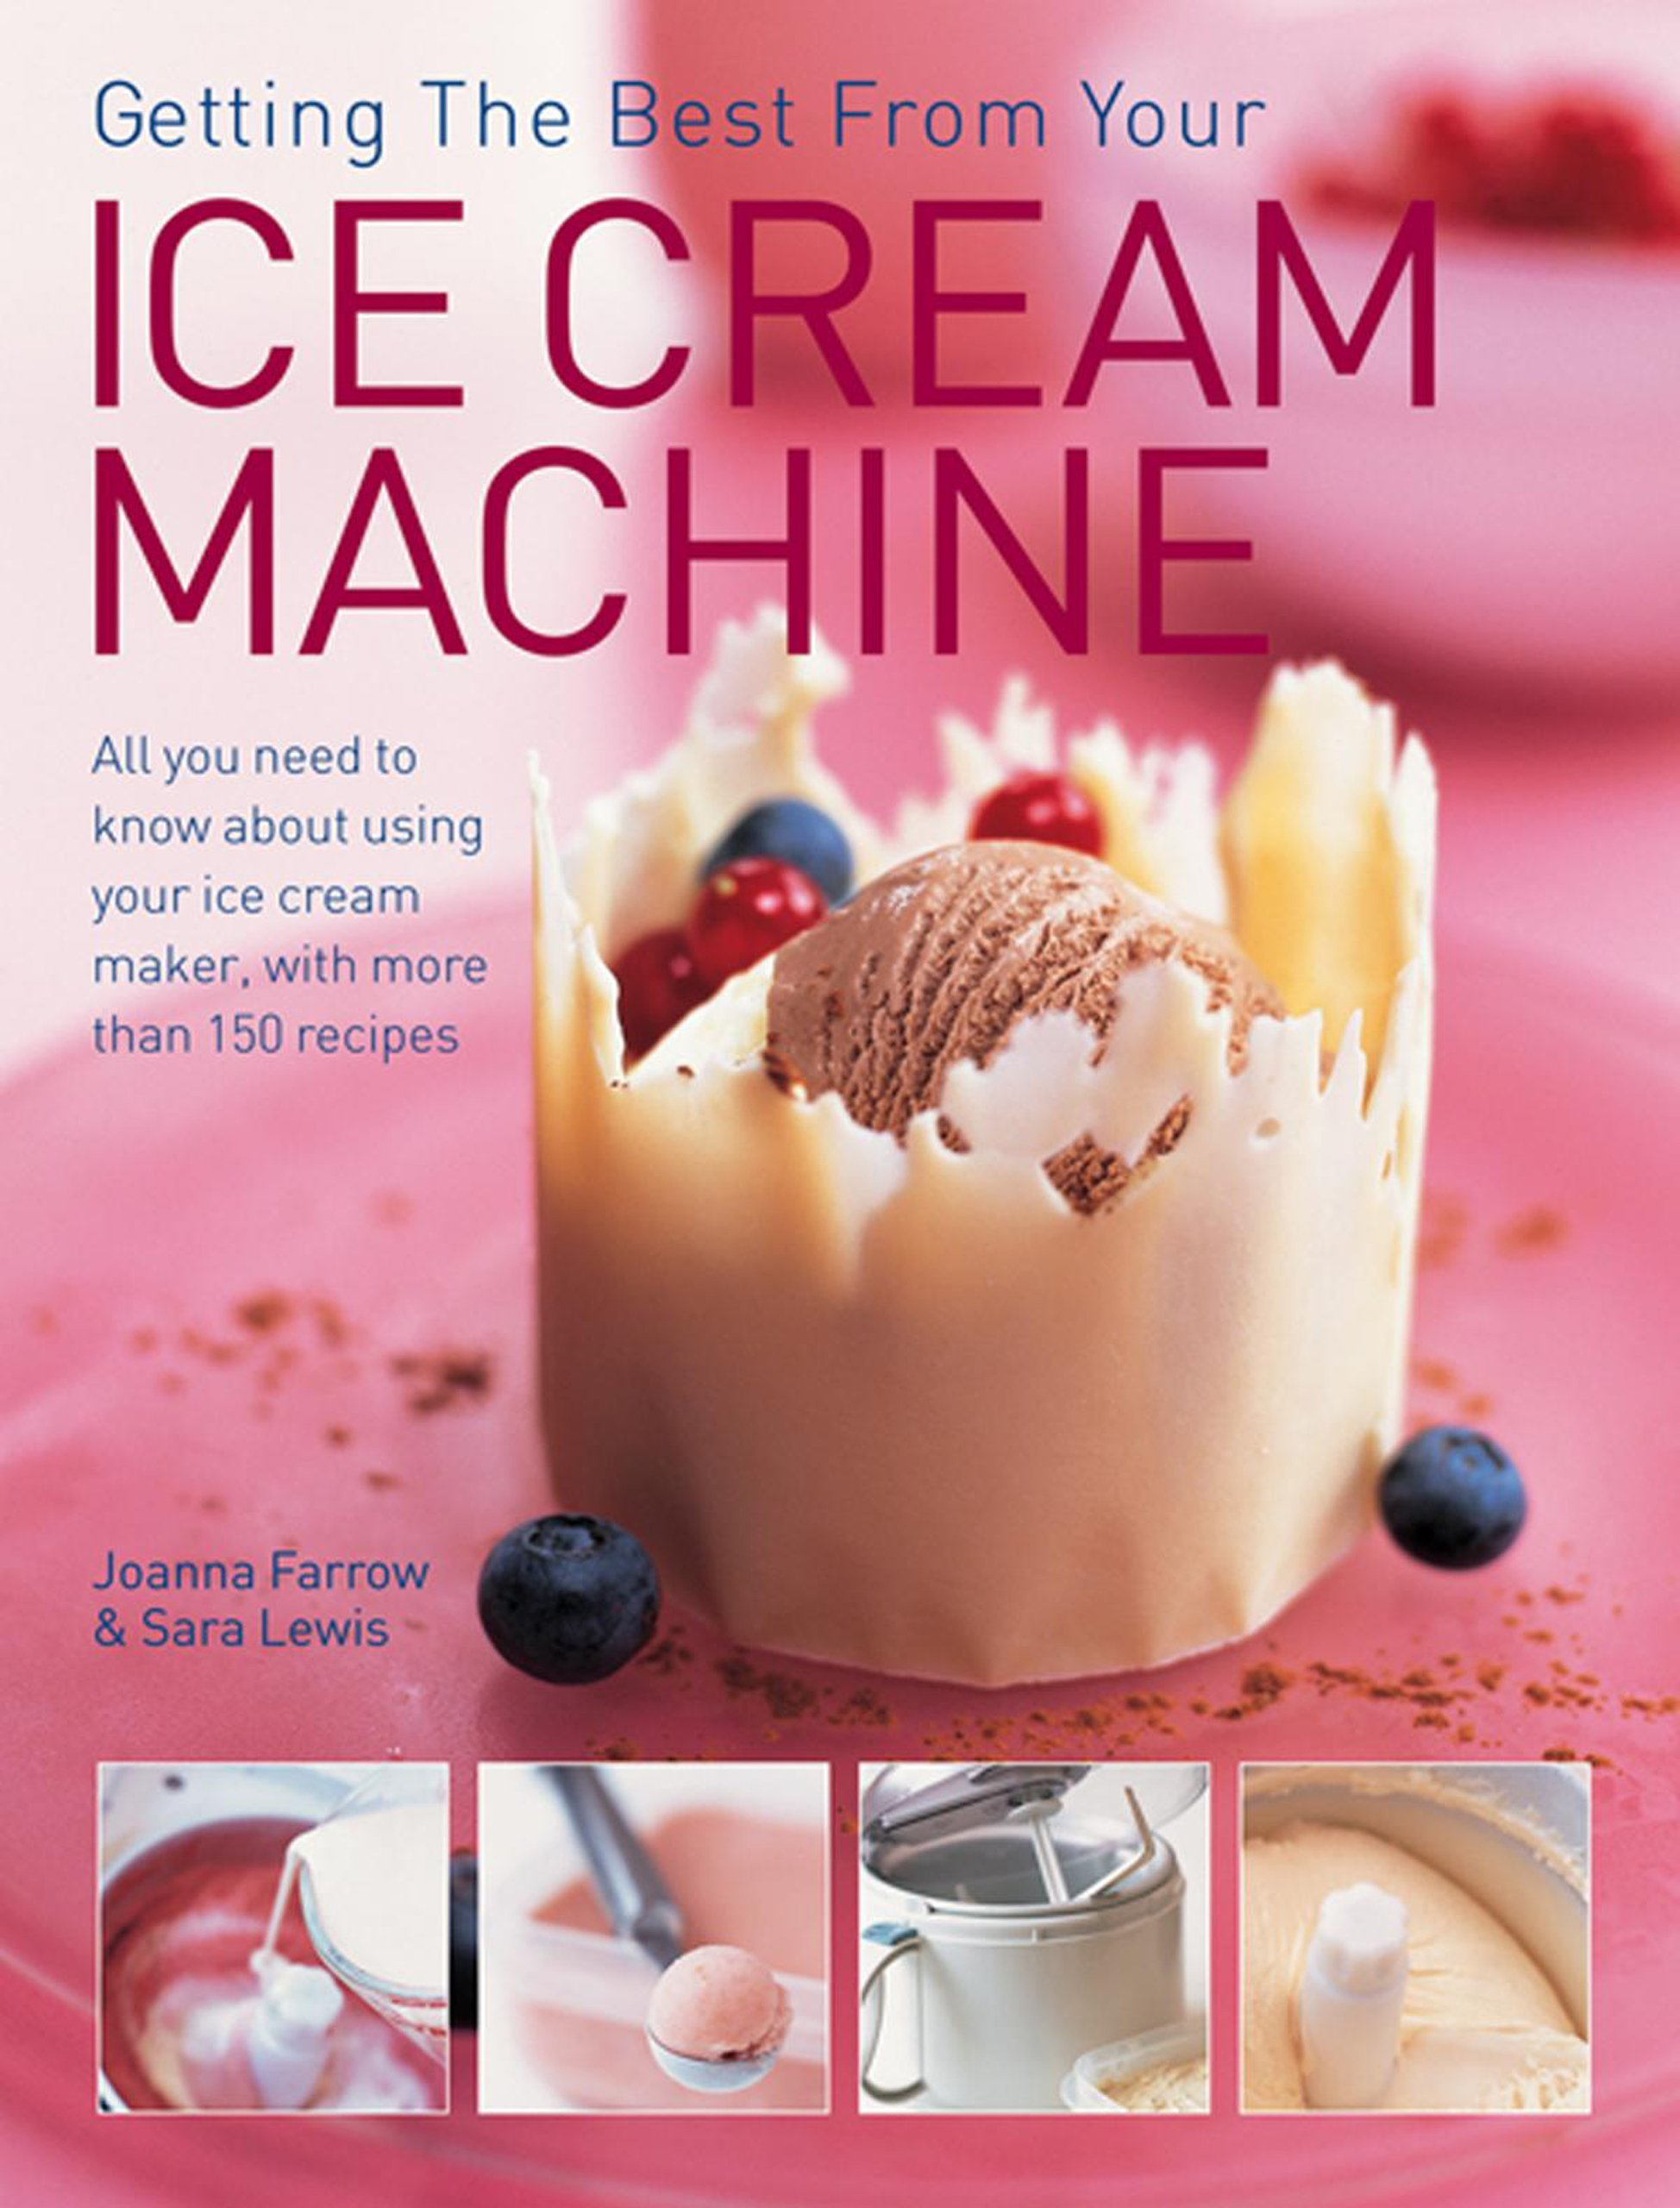 Getting The Best From Your Ice Cream Machine: All You Need To Know About Using Your Ice Cream Maker, With More Than 150 Recipes ebook